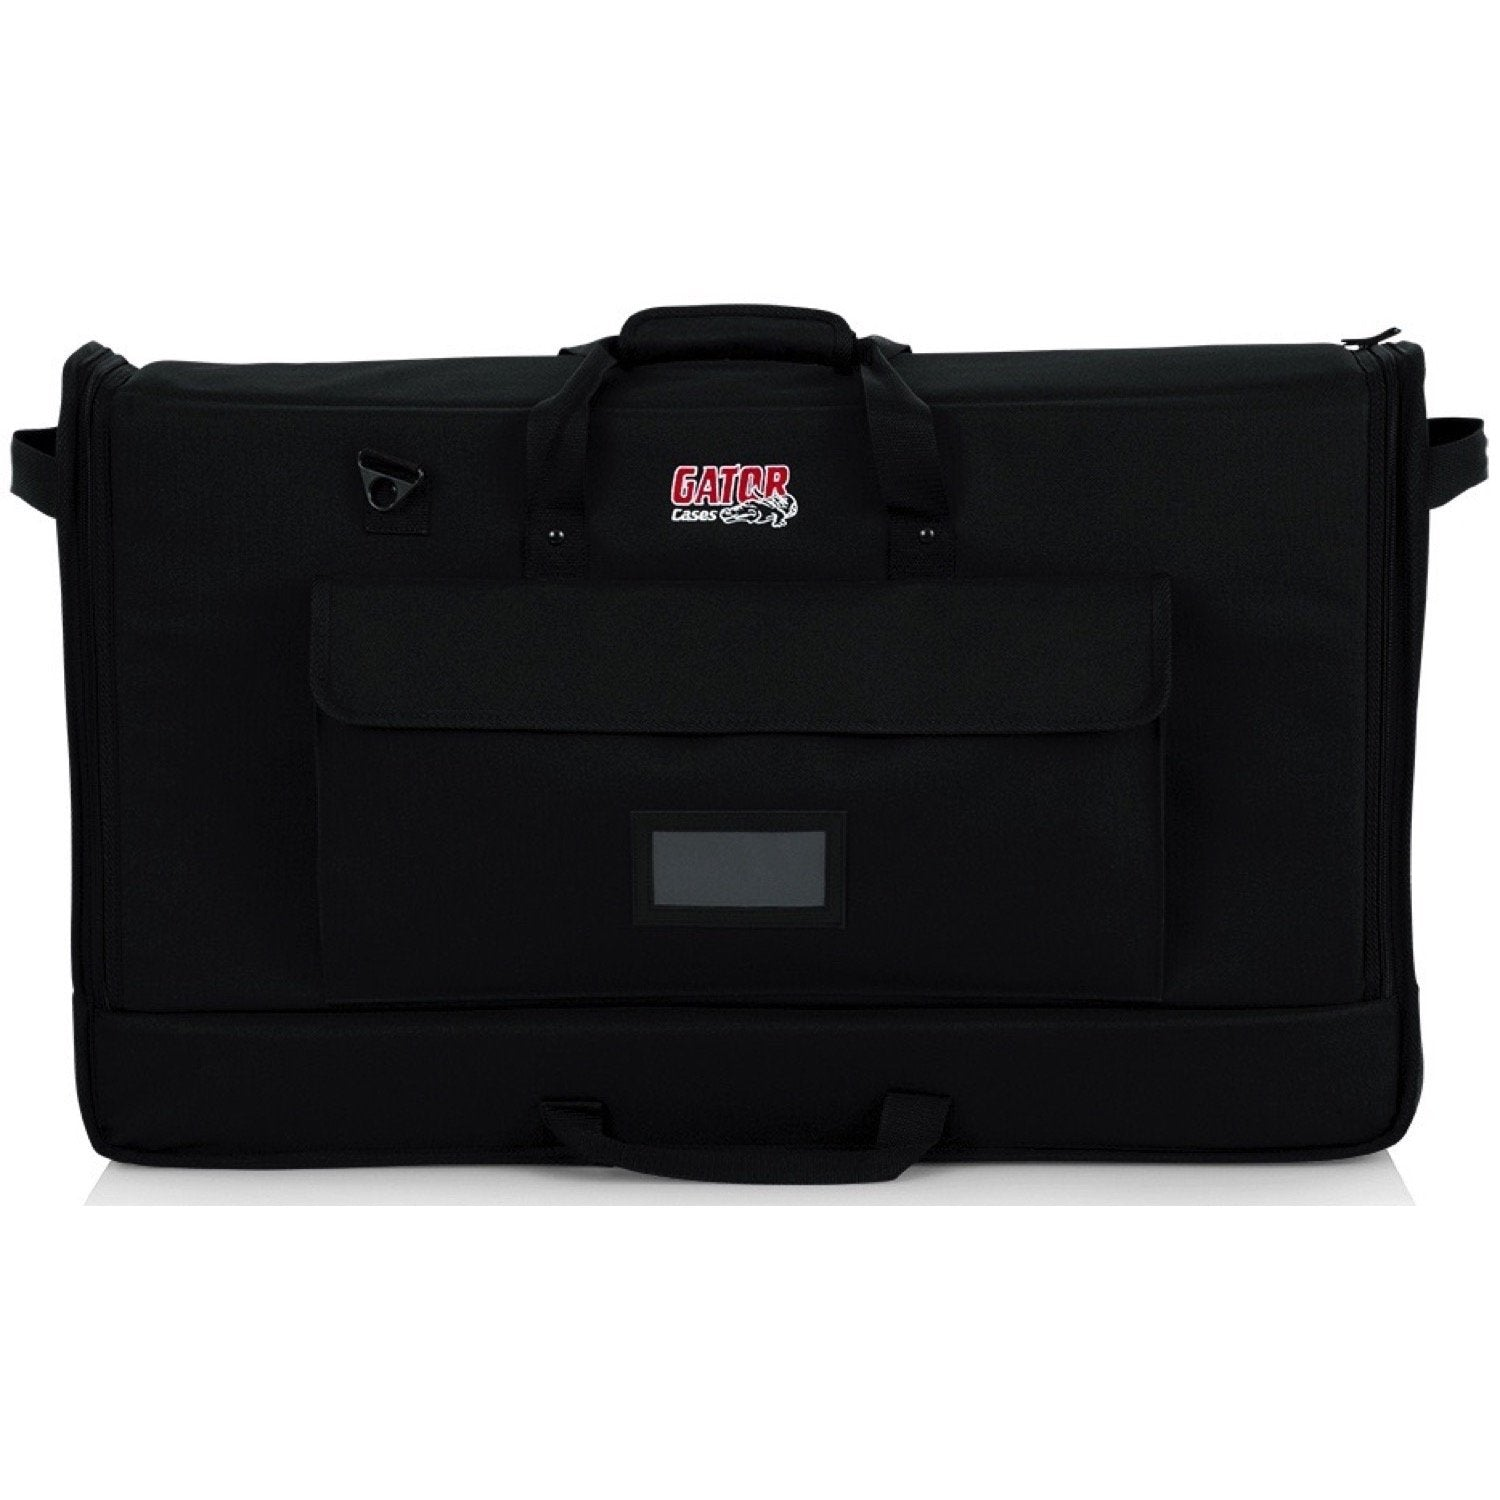 Gator G-LCD-TOTE Padded LCD Transport Bag, Medium